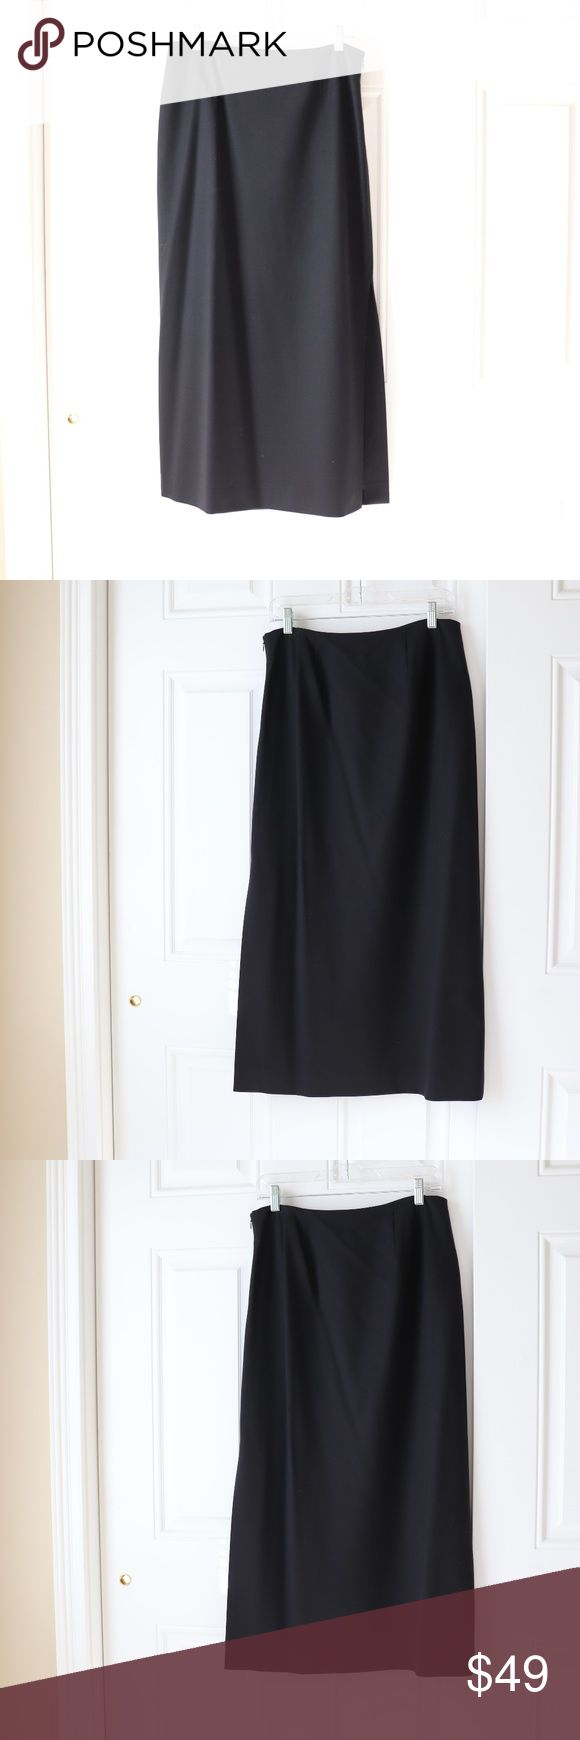 "Ann Taylor Black Long Skirt Size 10 Ann Taylor Black Long Skirt. Size 10. Side zip closure. Fully lined.  Lightweight wool fabric can be worn year-round.  Condition: Gently used.  Material:    96% Wool, 4% Lycra.  Measurements laying flat, across front: Waist- 15.5""    Length- 36""    Left Side Slit Opening- 18""  Pet free and smoke free home. Ann Taylor Skirts Maxi"